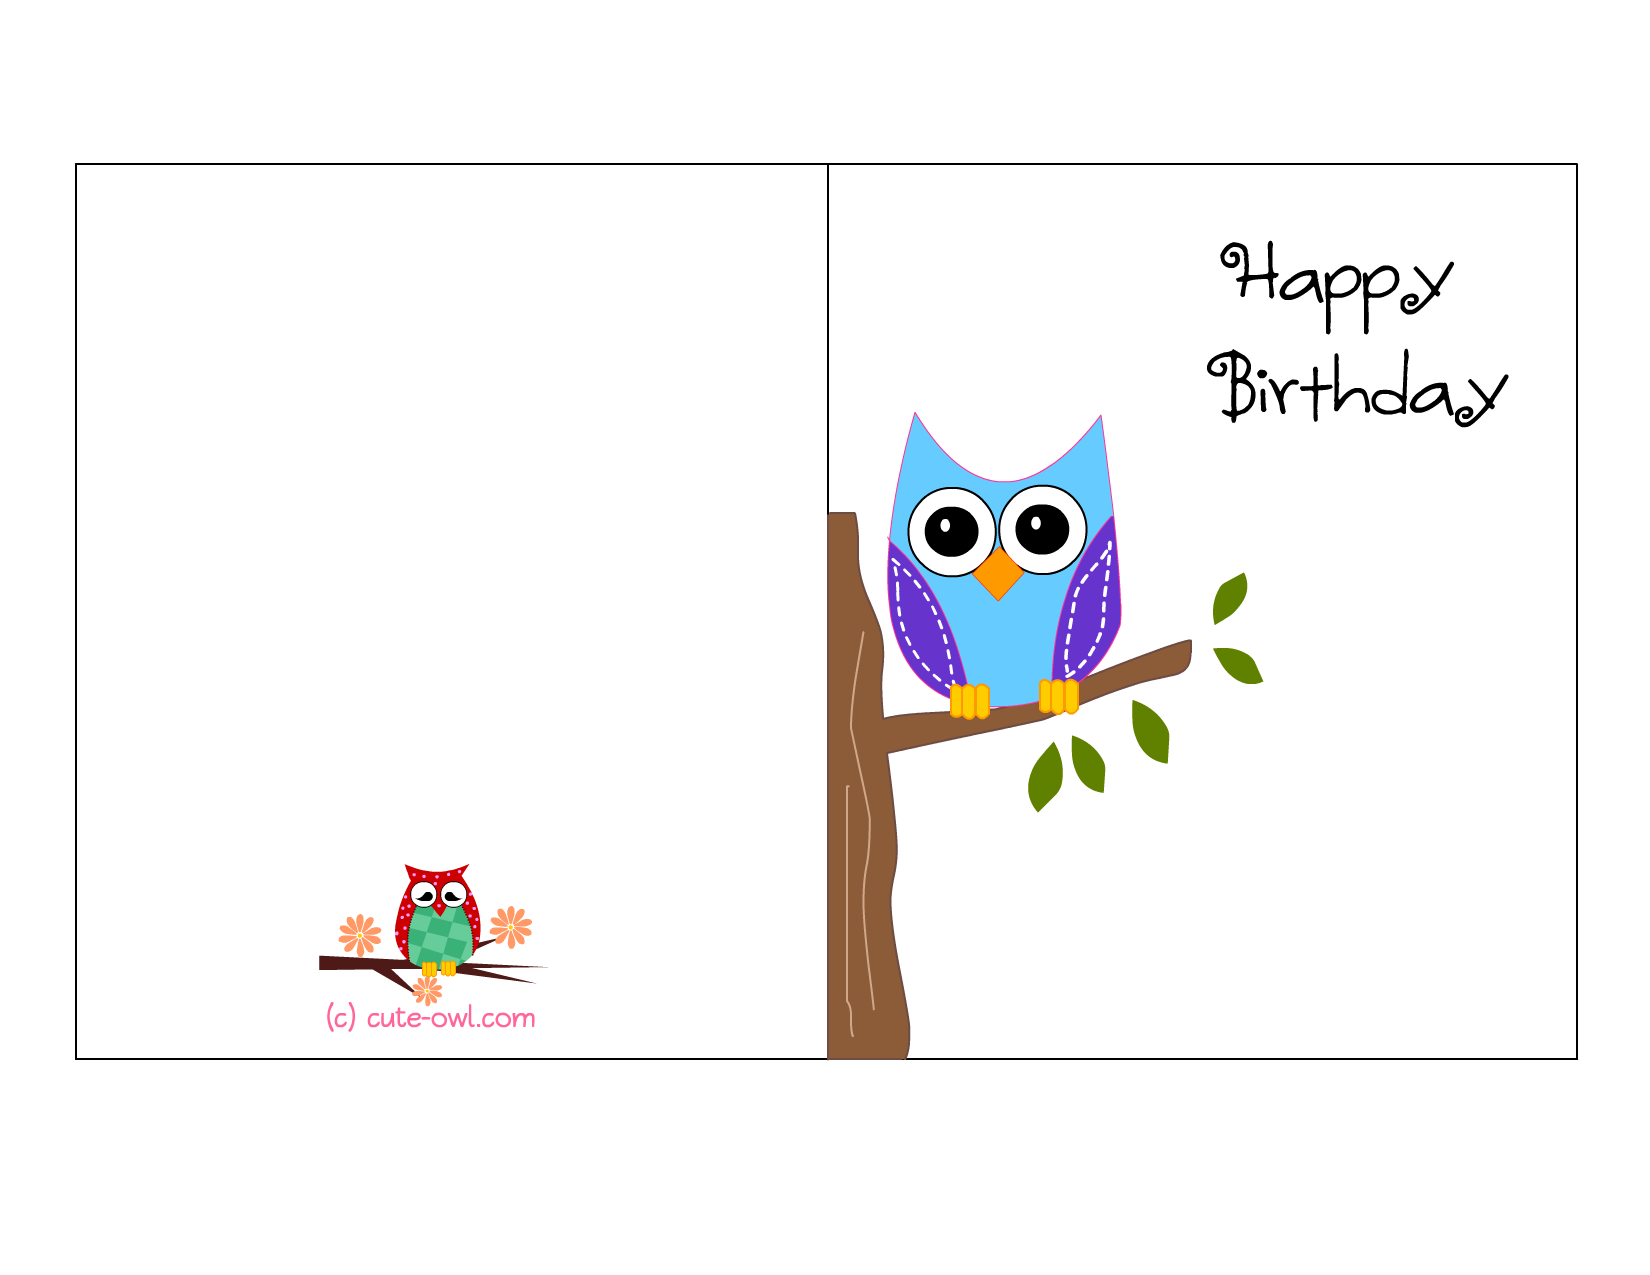 print free birthday cards Kleo.beachfix.co